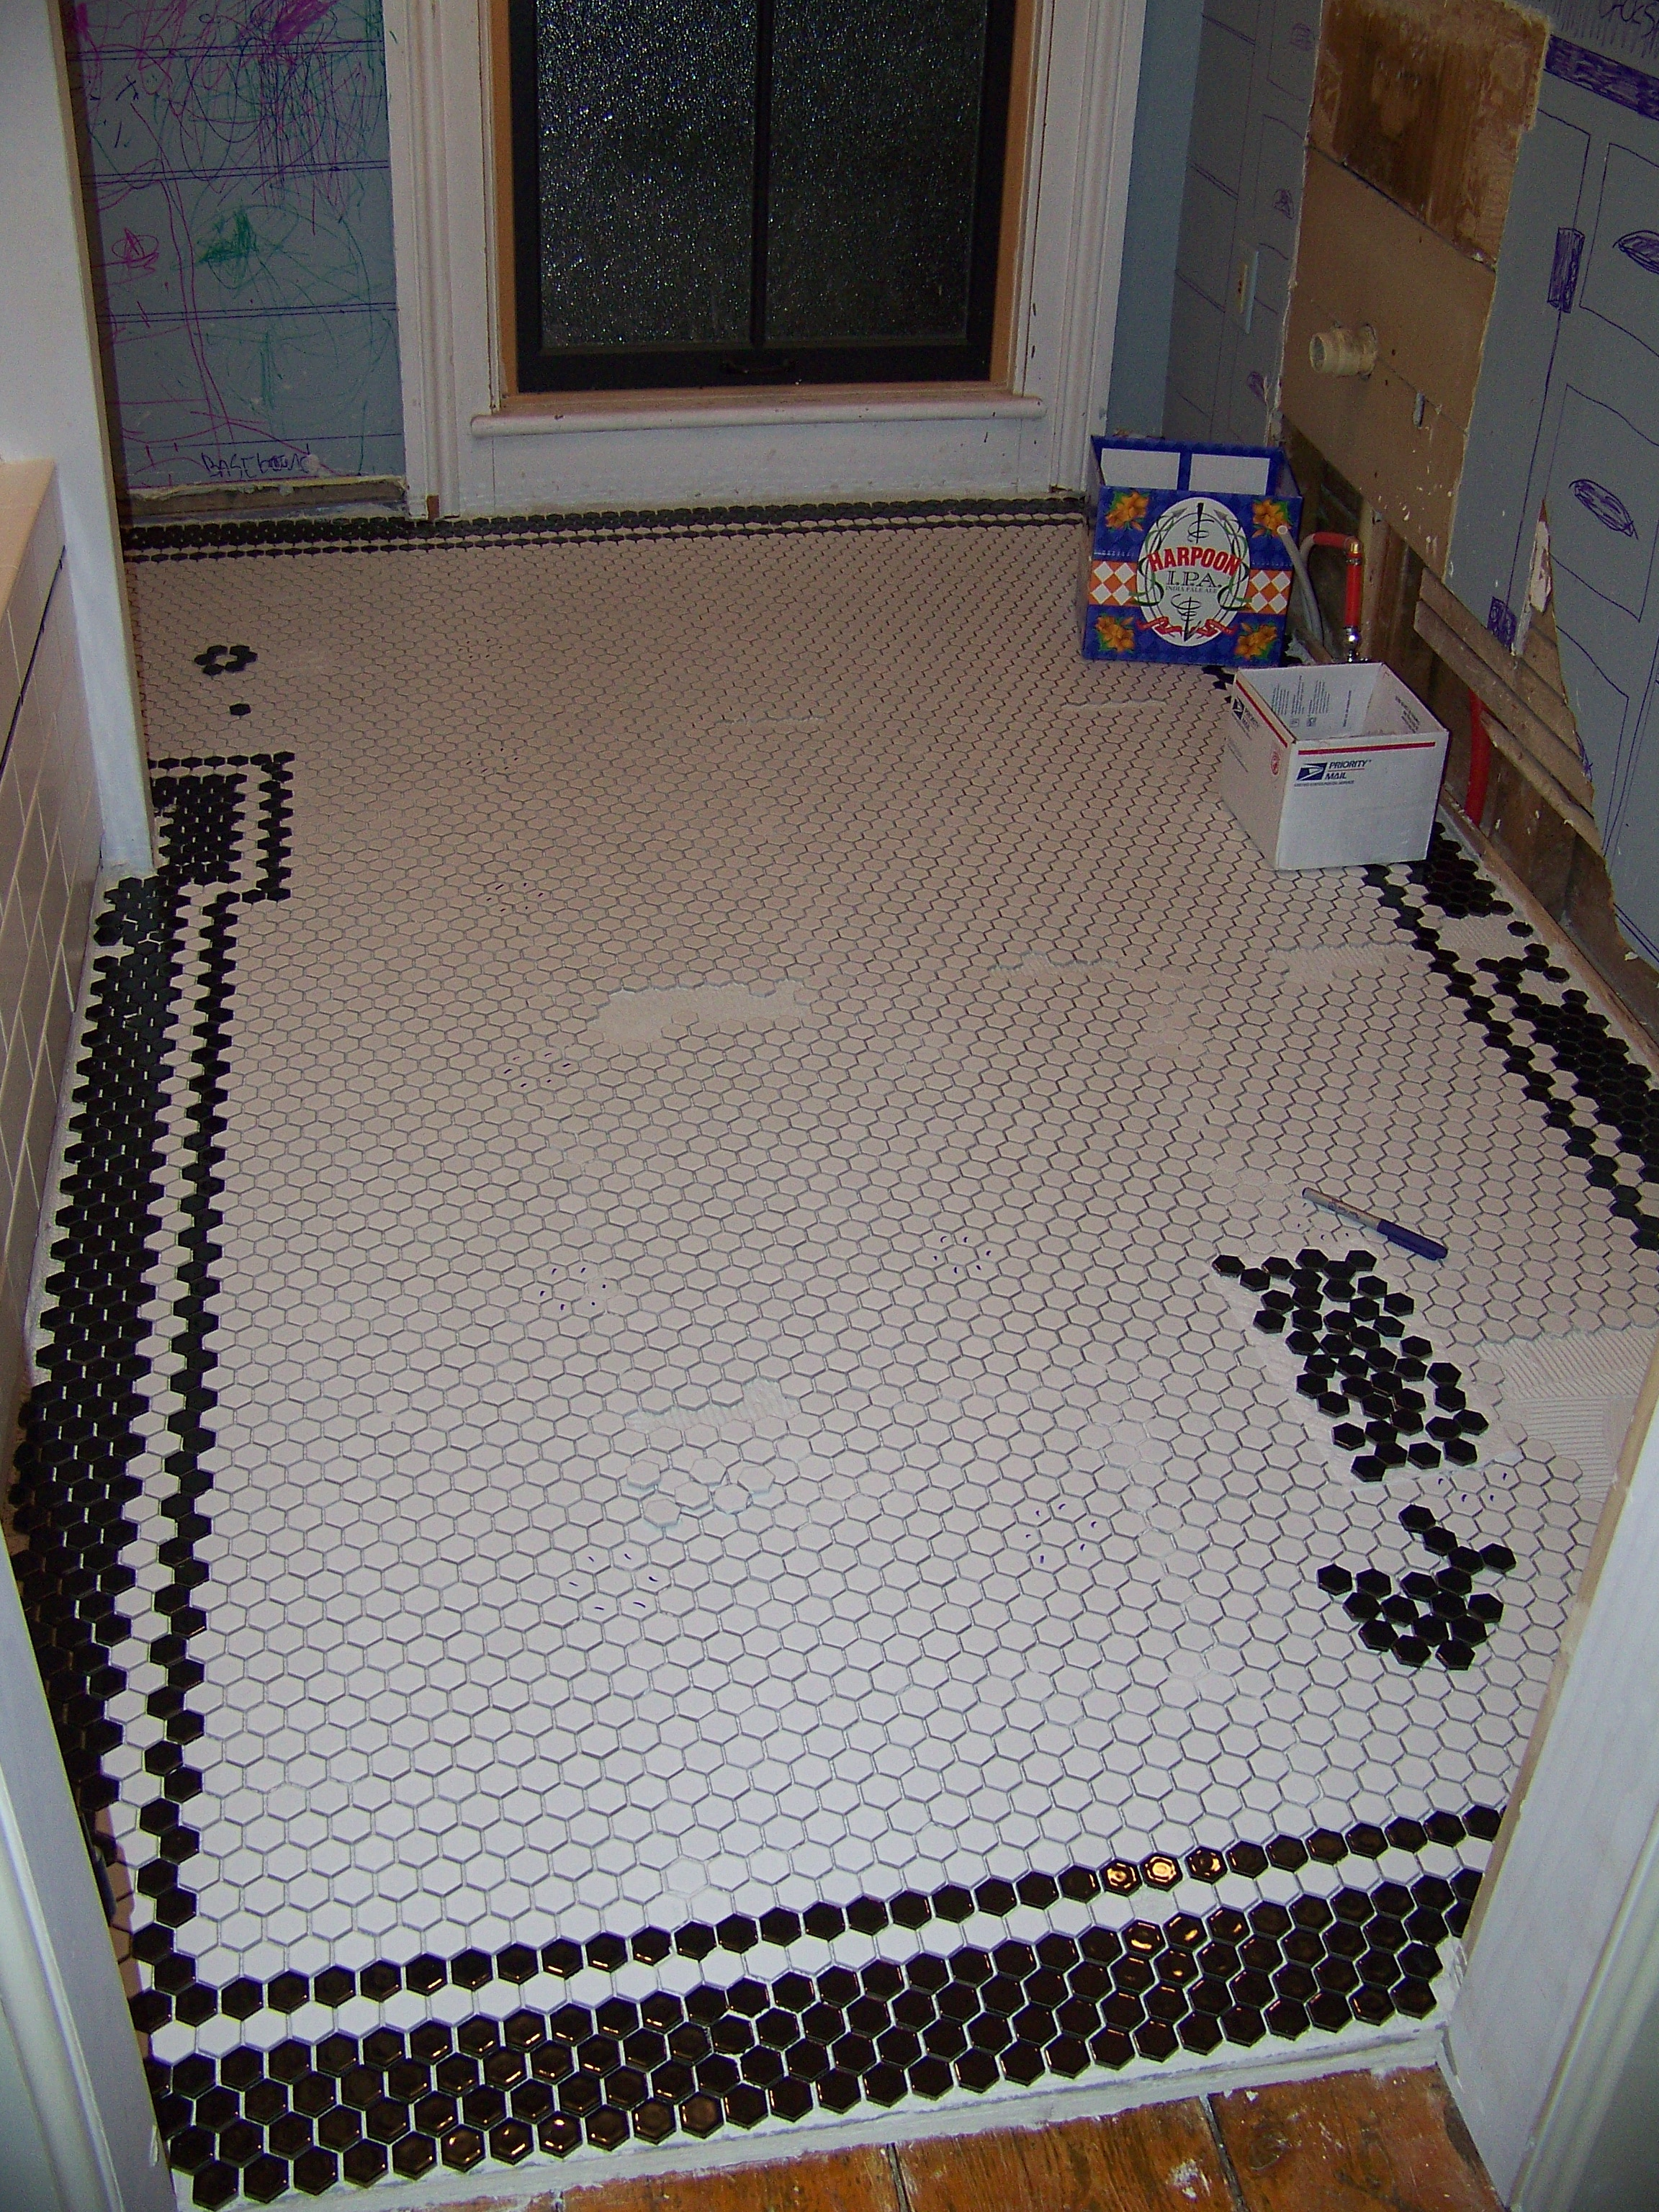 Hexagon Tile Floor With Border - Tile Designs